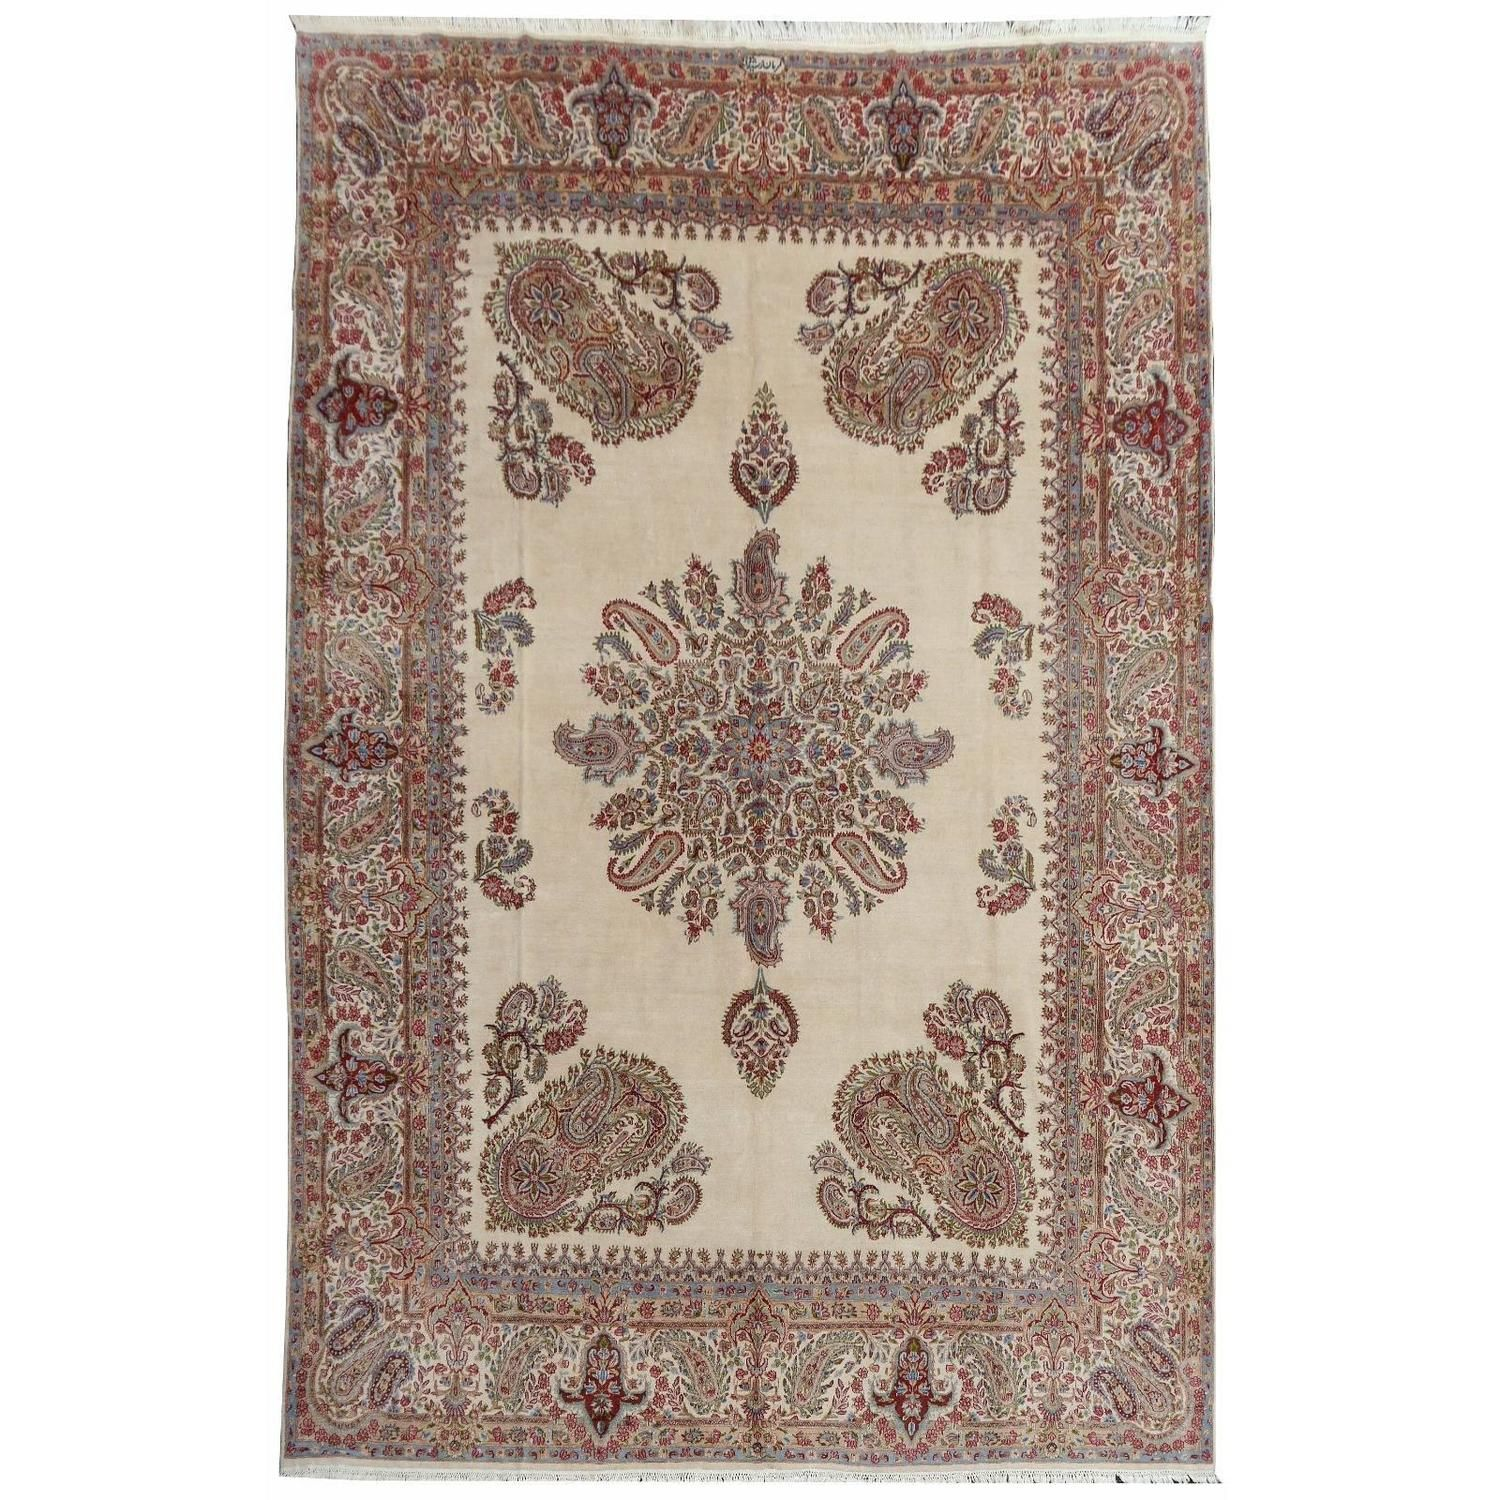 Talis Teppiche Topas 26206 Topas Modern Classic Design Rug Red Grey Brown By Talis